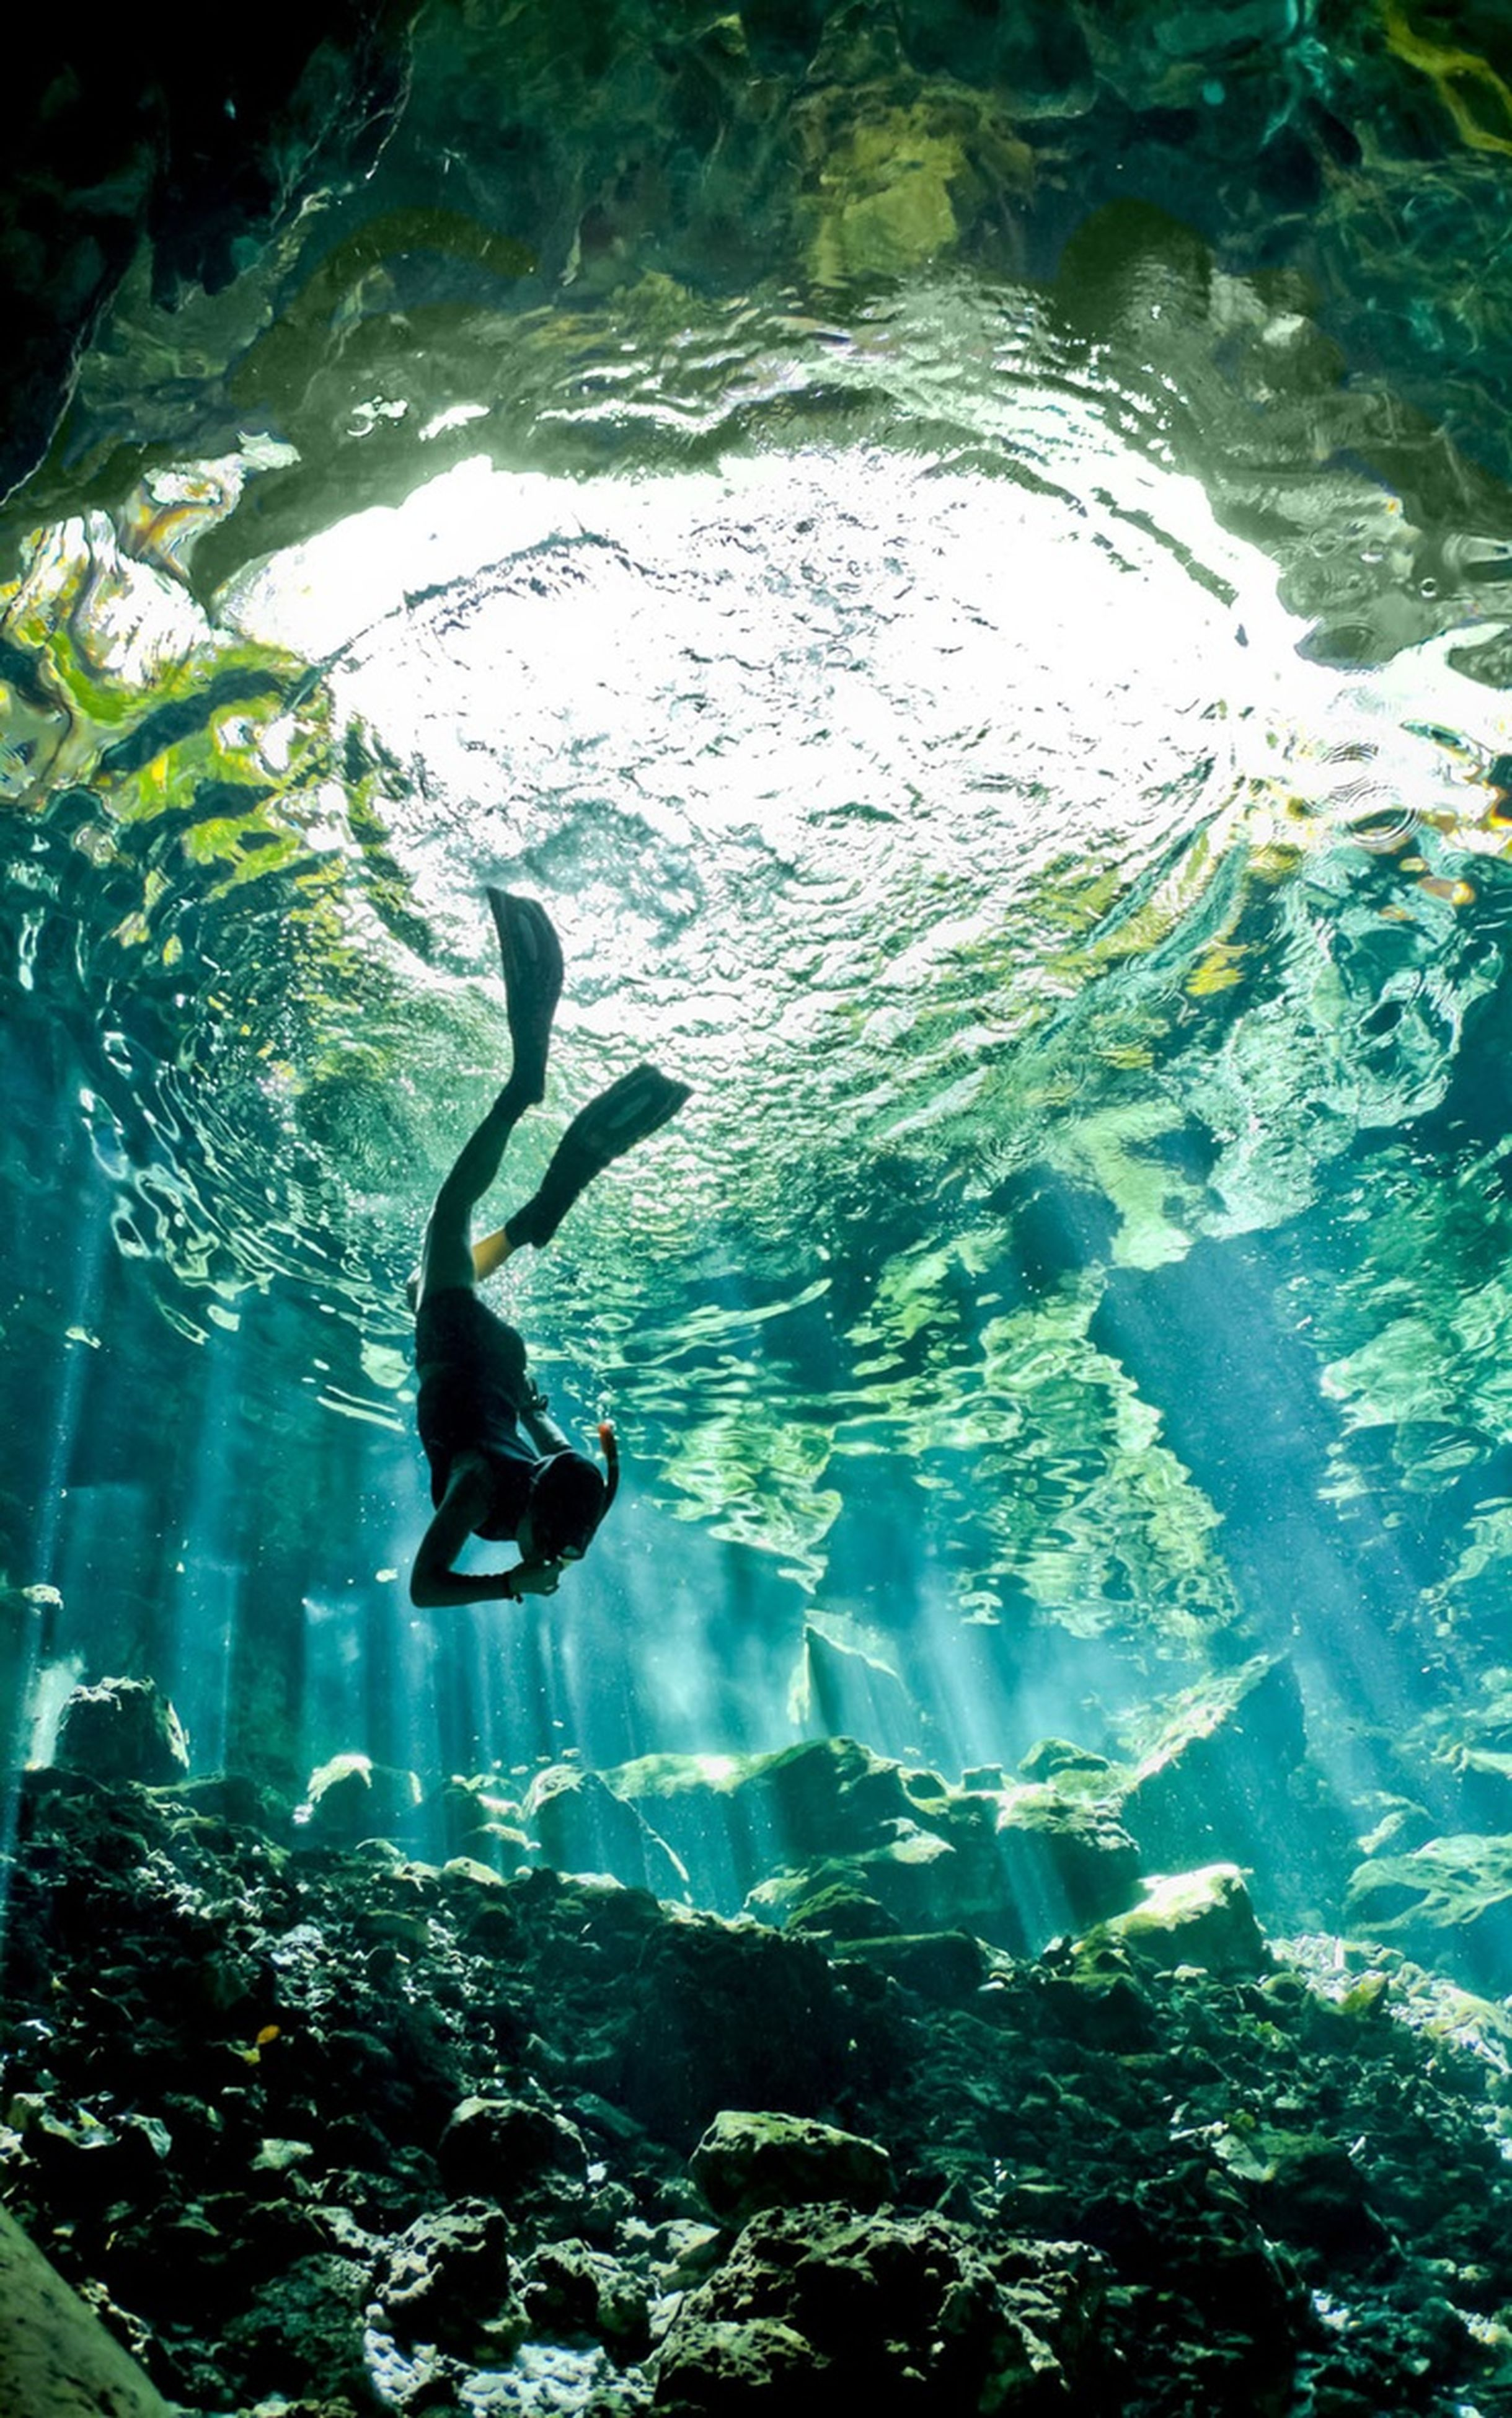 water, swimming, high angle view, nature, lake, waterfront, beauty in nature, motion, full length, reflection, underwater, rippled, animals in the wild, rock - object, day, sunlight, tranquility, outdoors